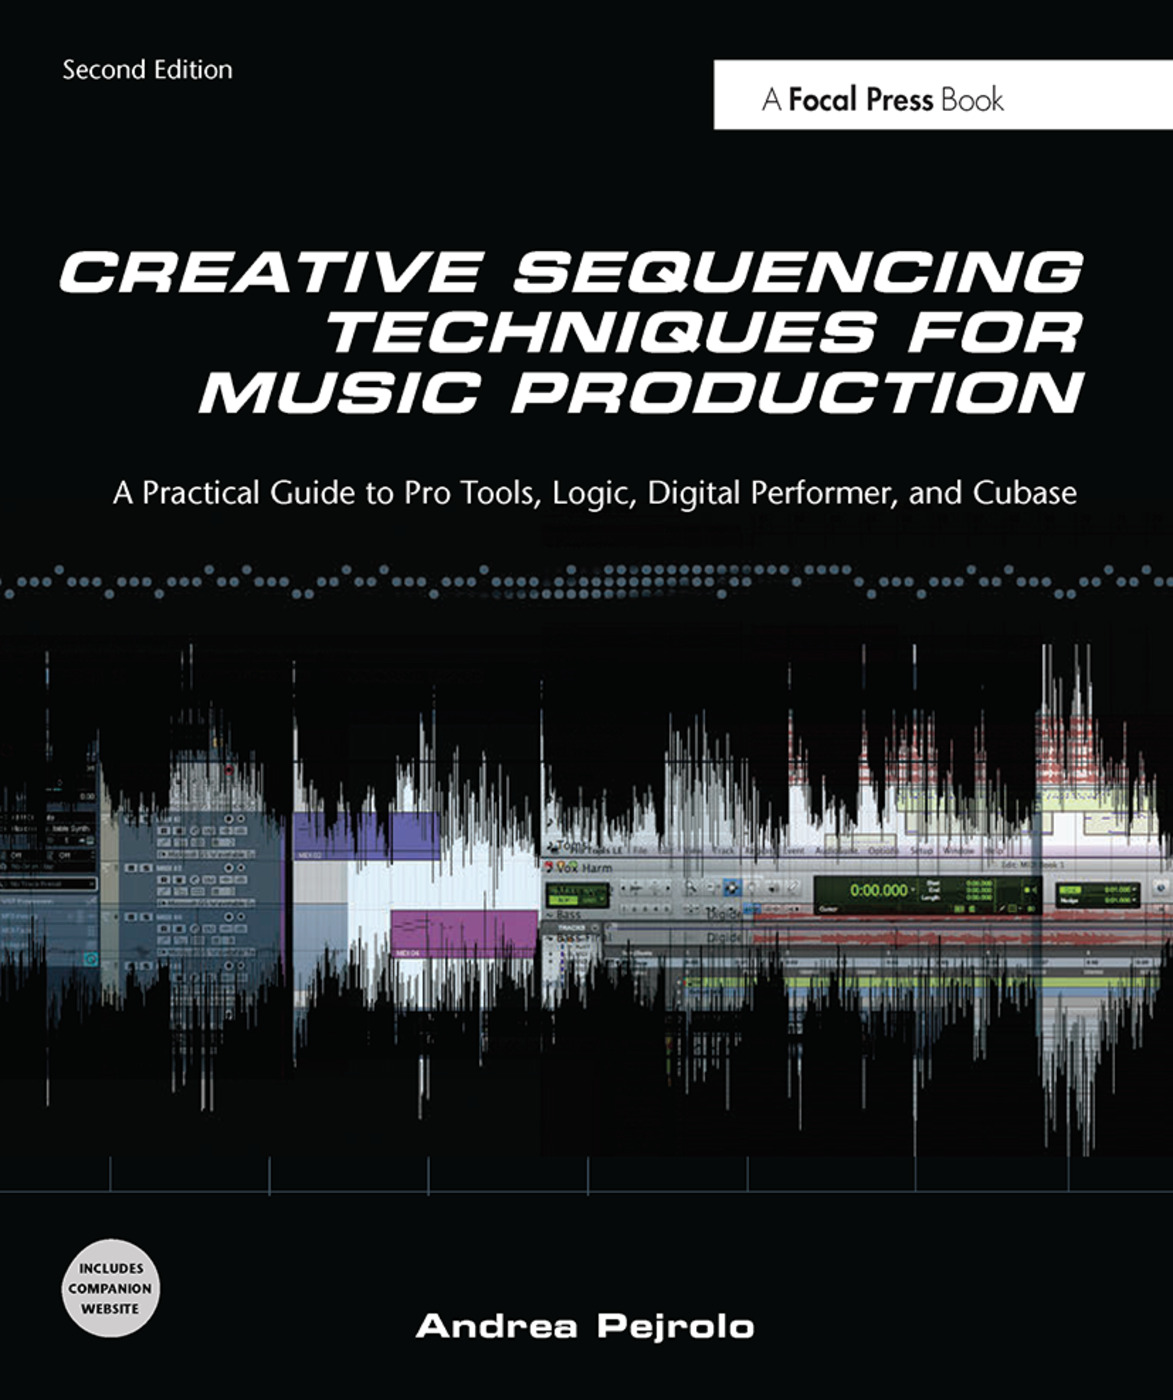 Creative Sequencing Techniques for Music Production, Second Edition: A Practical Guide to Pro Tools, Logic, Digital Performer, and Cubase Andrea Pejrolo